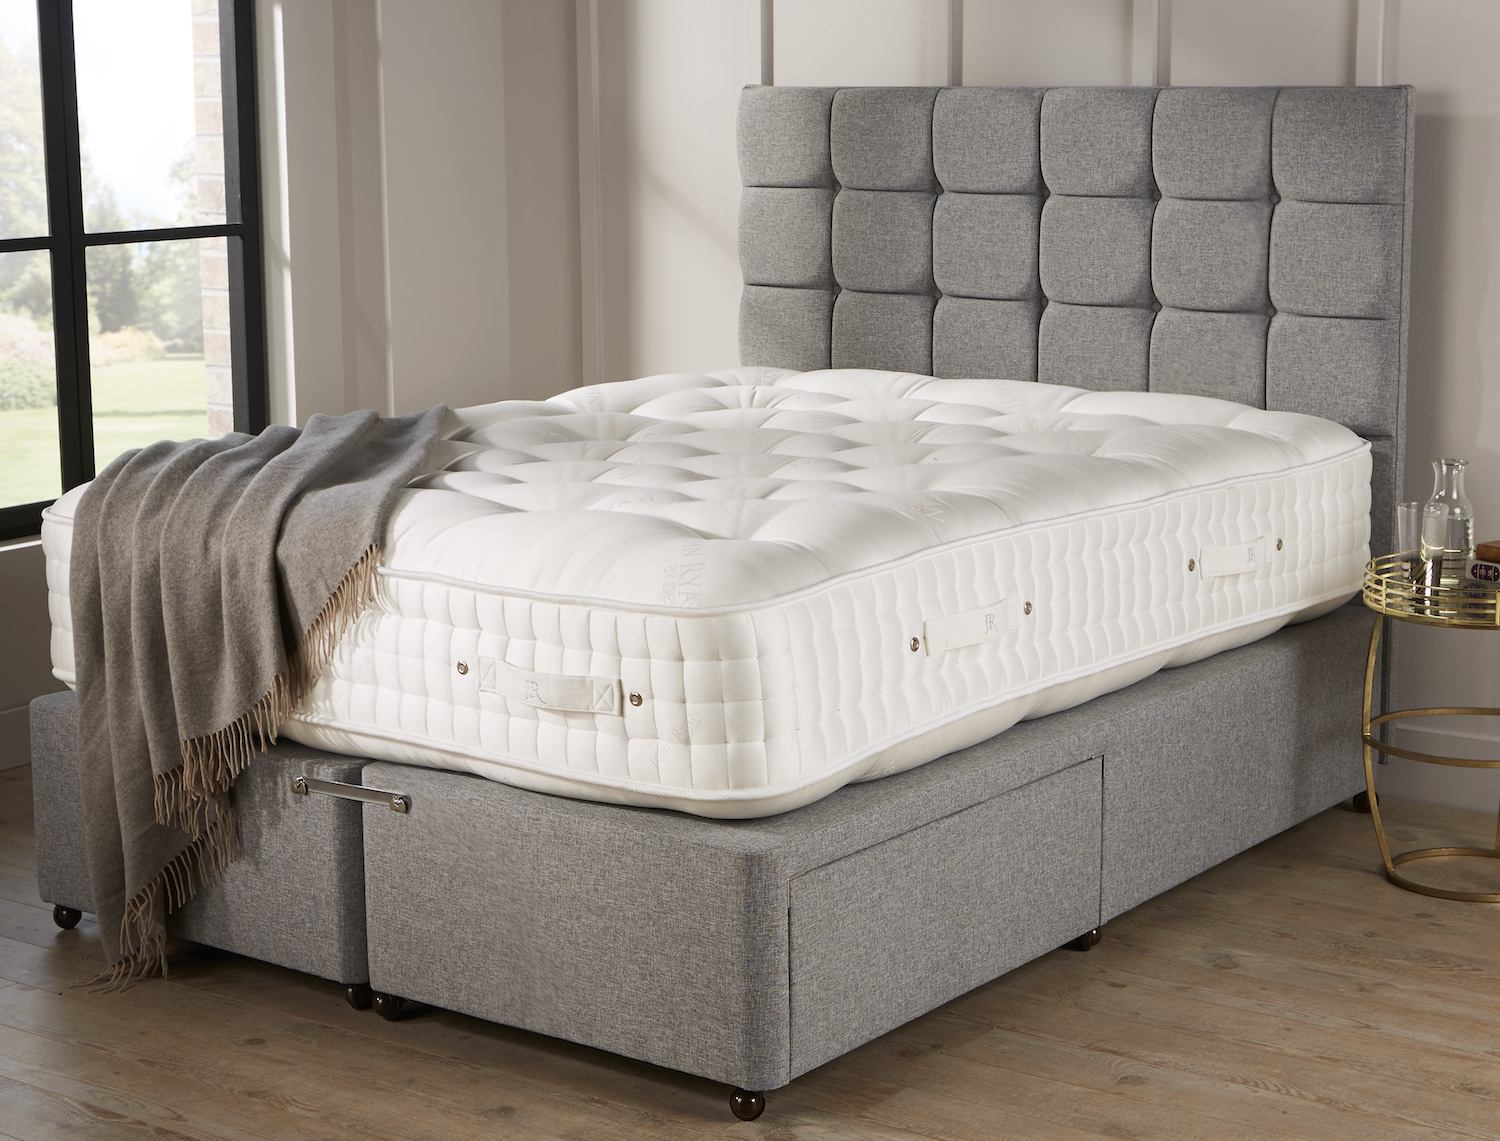 Stupendous Mattresses For Slats John Ryan By Design Andrewgaddart Wooden Chair Designs For Living Room Andrewgaddartcom